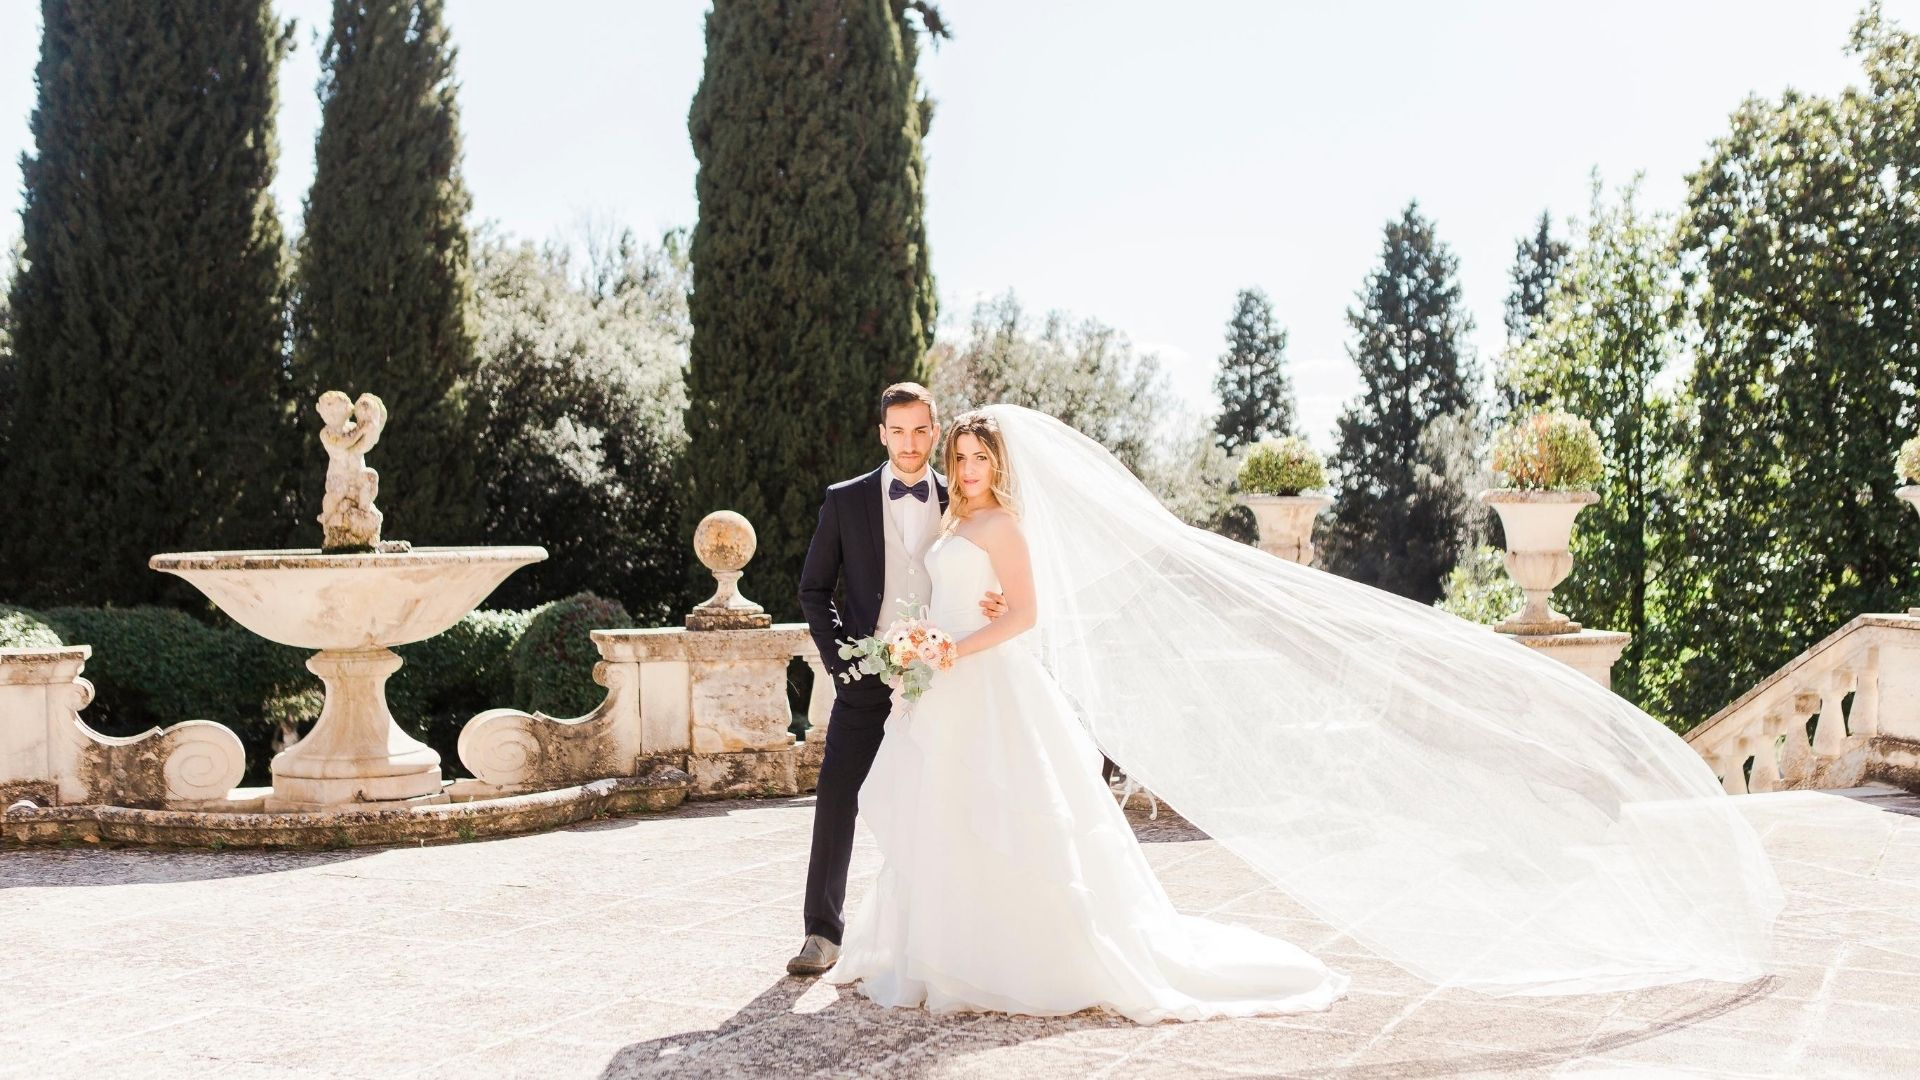 Velo da sposa mosso dal vento  - Dream On Wedding Planner & Design in Umbria